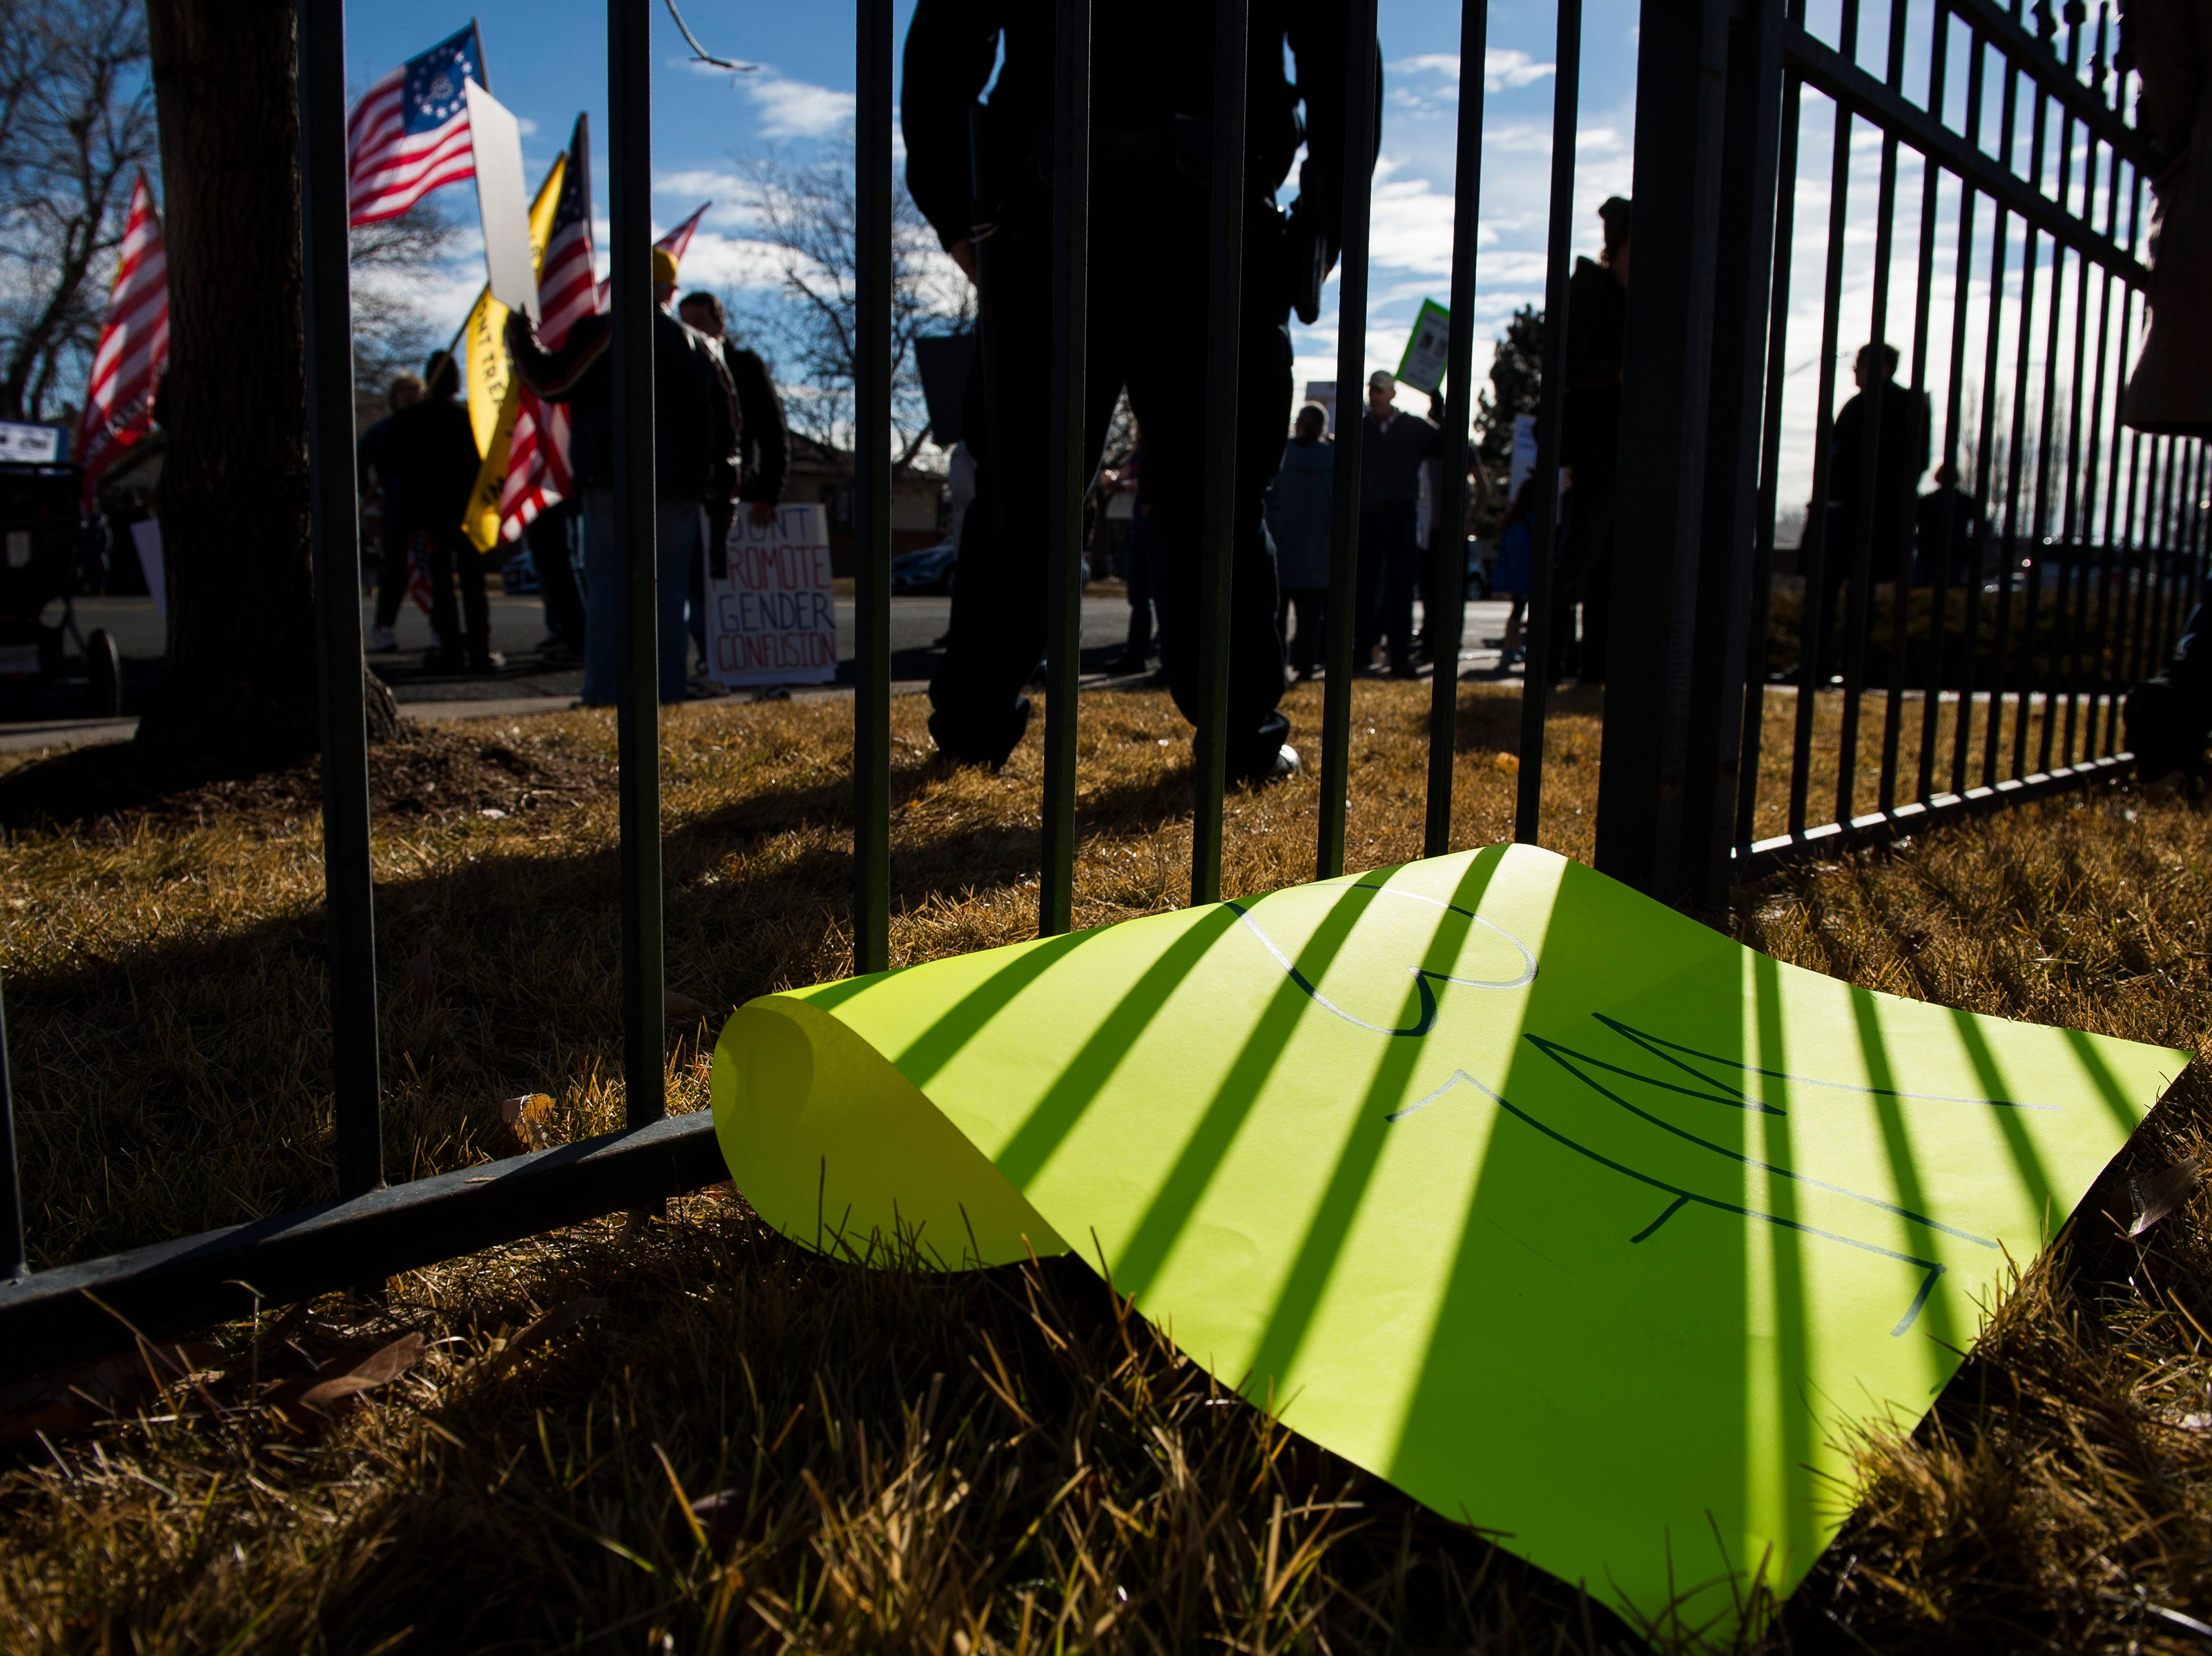 A counterprotester's sign sits in the grass while protestors gather outside the library before Drag Queen Story Hour on Saturday, Jan. 12, 2019, at the Clearview Public Library in Windsor, Colo. Drag Queen Story Hour is a program put on by SPLASH, an LGBTQ+ youth outreach organization.